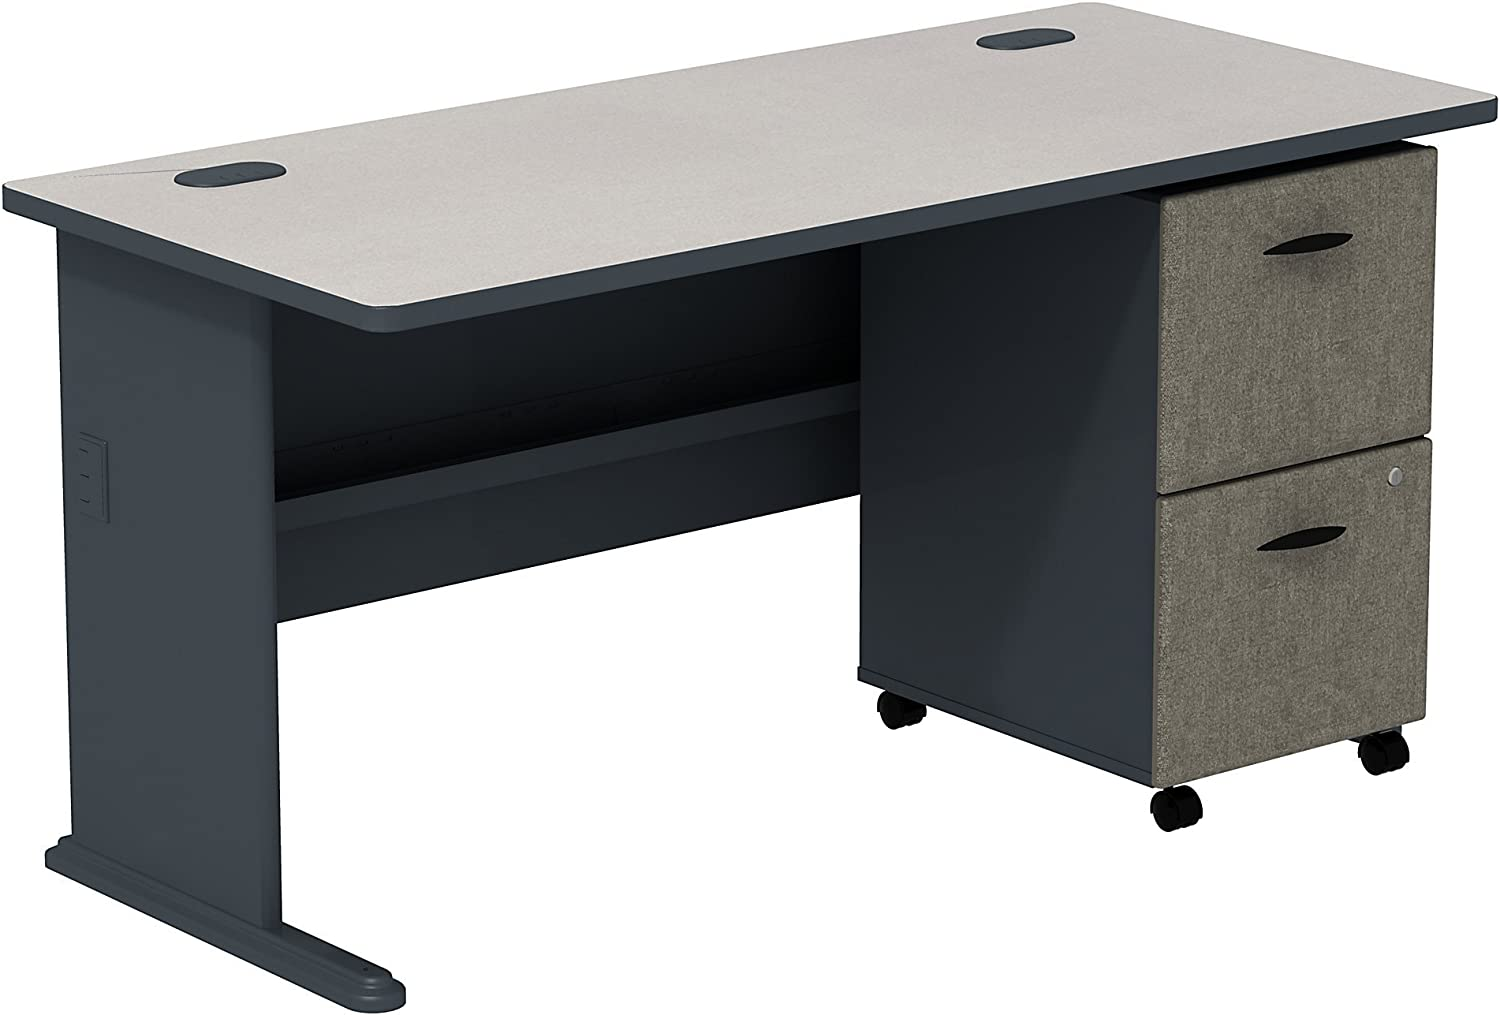 Series A 60W Desk with 2 Drawer Mobile Pedestal in White Spectrum and Slate